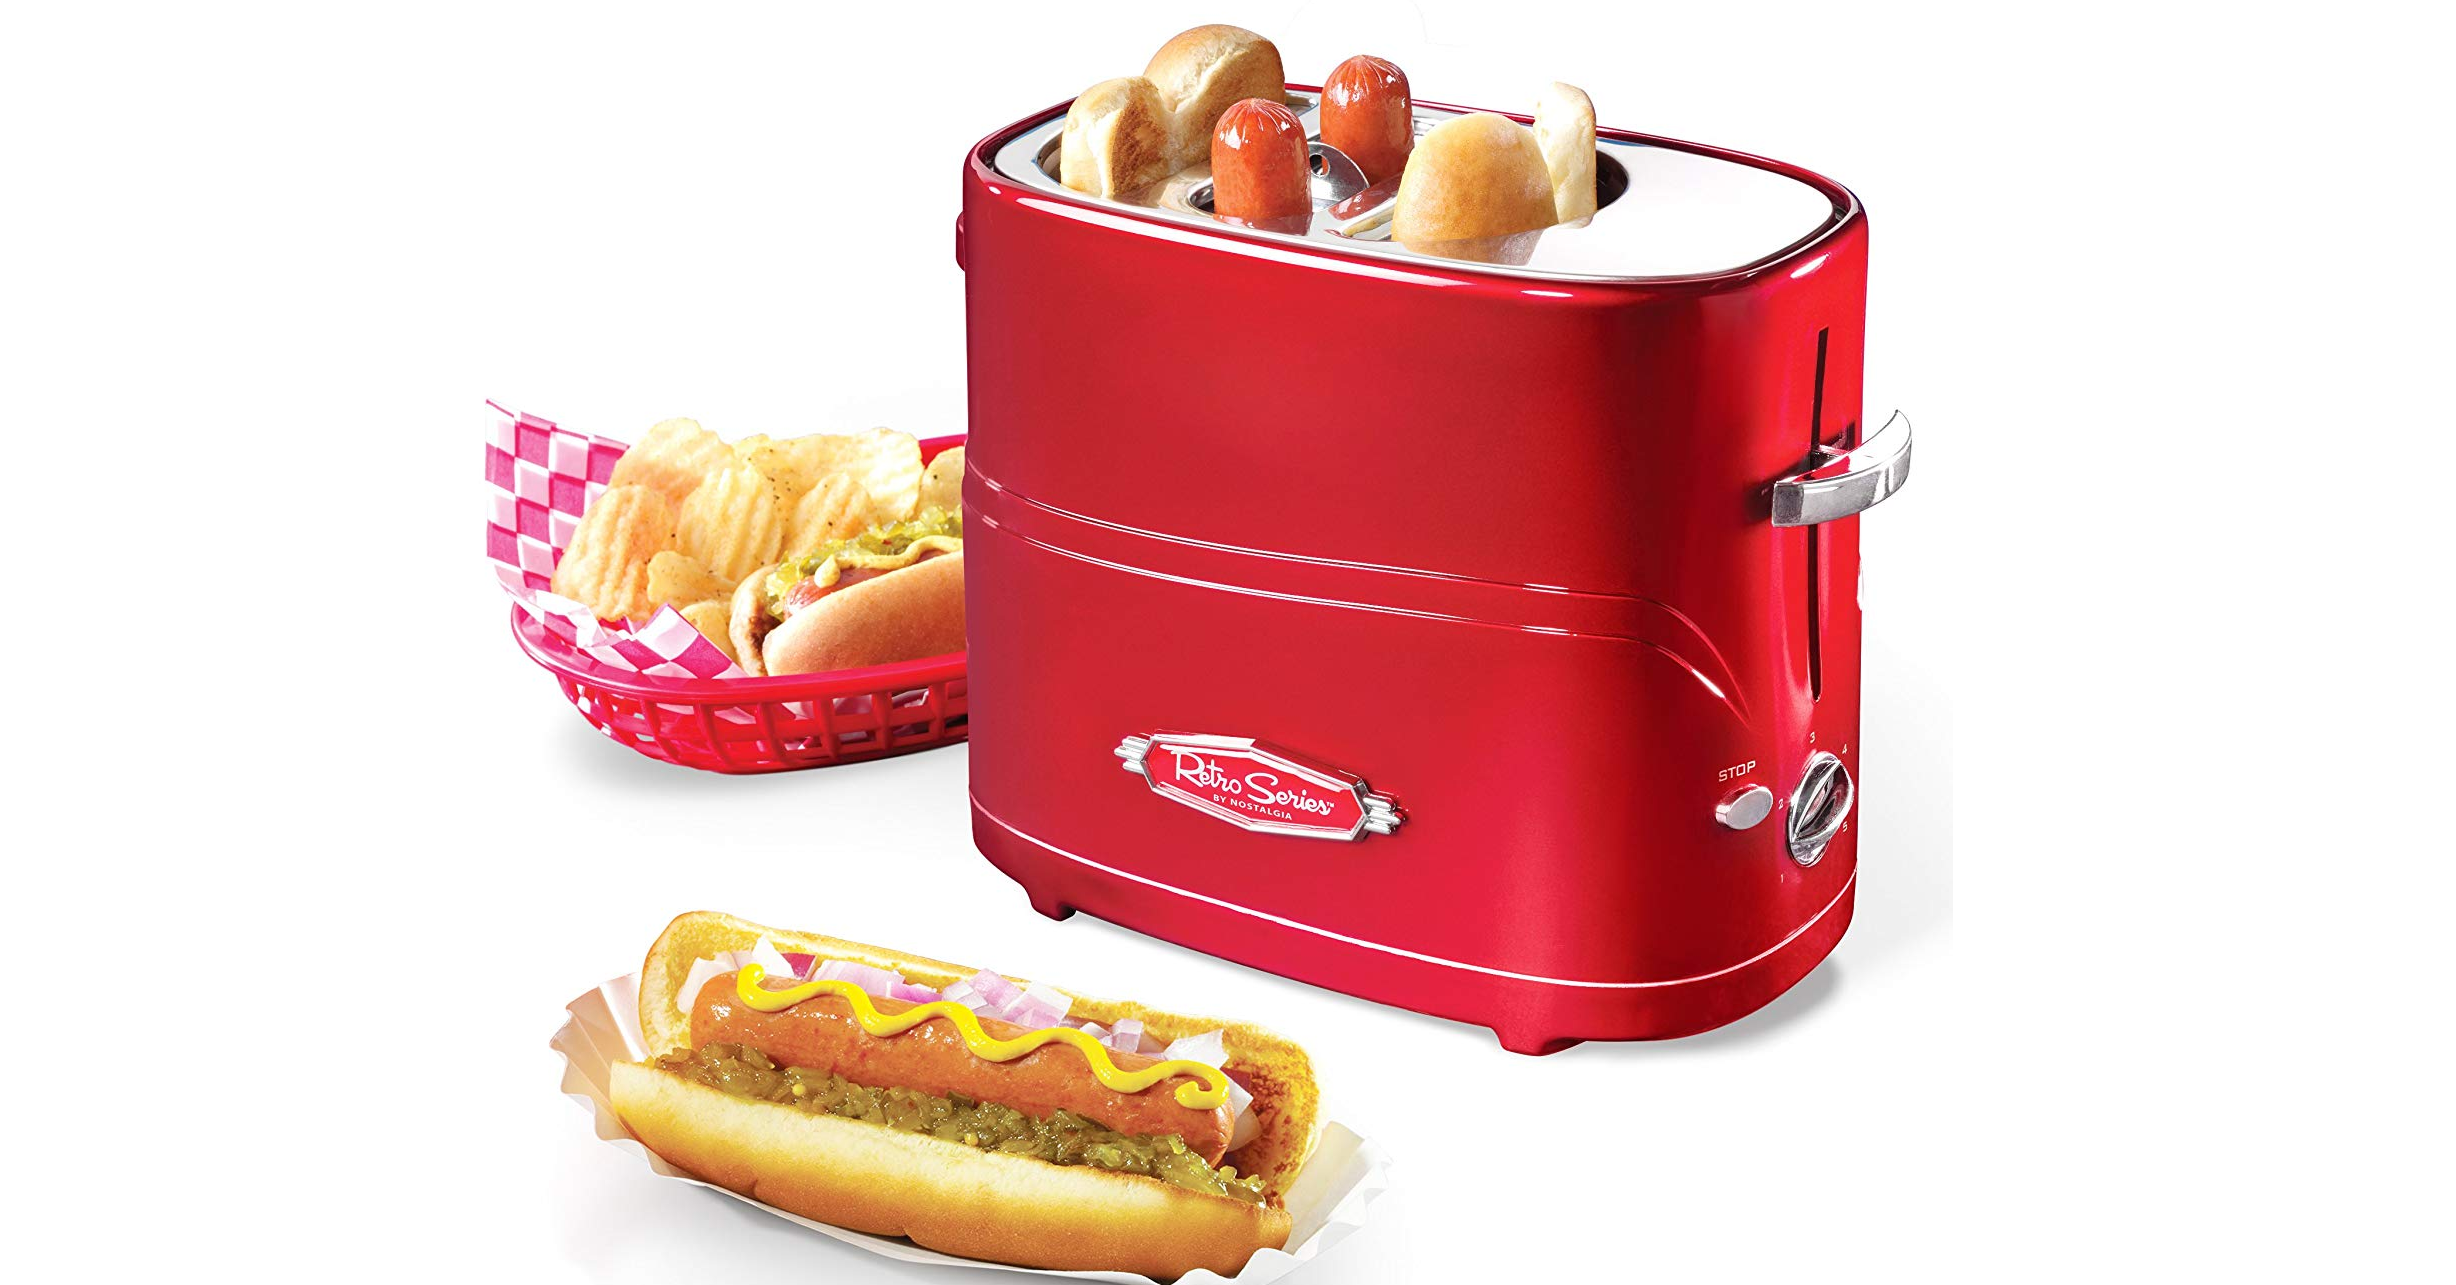 Hot dog, Toaster, Toast, Nostalgia, Cooking, Grilling, Kitchen, Bun, Nostalgia TCS2 Grilled Cheese Sandwich Toaster, Hot dog stand, hot dog toaster, Fast food, Junk food, Food, French fries, Toaster, Kids' meal, Cuisine, Dish, Fried food, American food